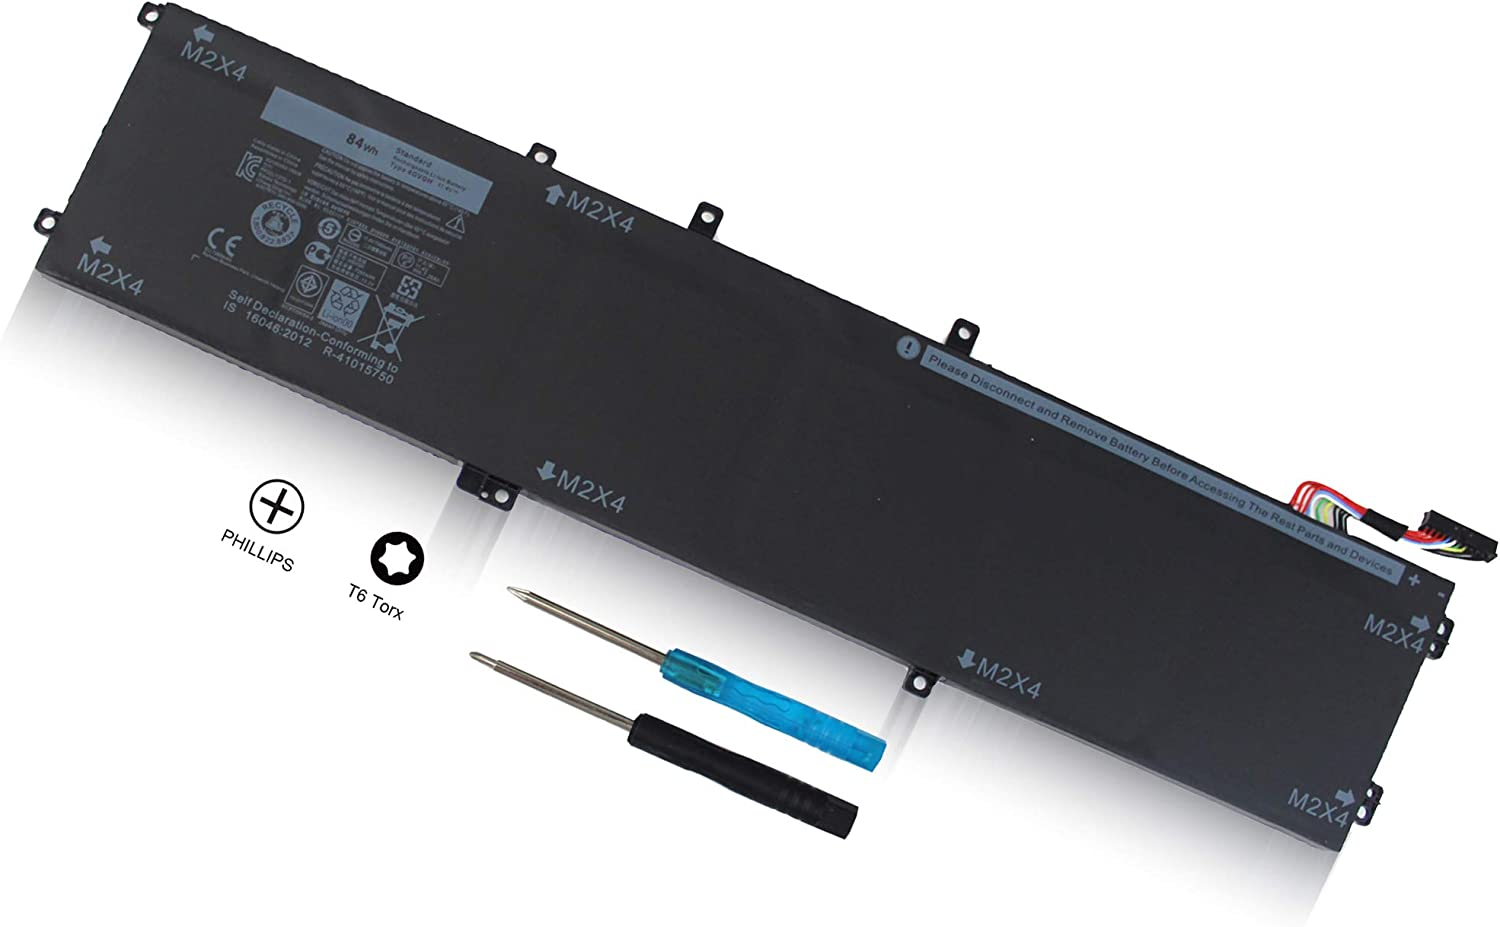 New 4GVGH (11.4V 84Wh) Laptop Battery Compatible with DELL XPS 15 9550 1P6KD 01P6KD 4GVGH T453X 0T453X P56F T453X 062MJV M7R96 451-BBUX